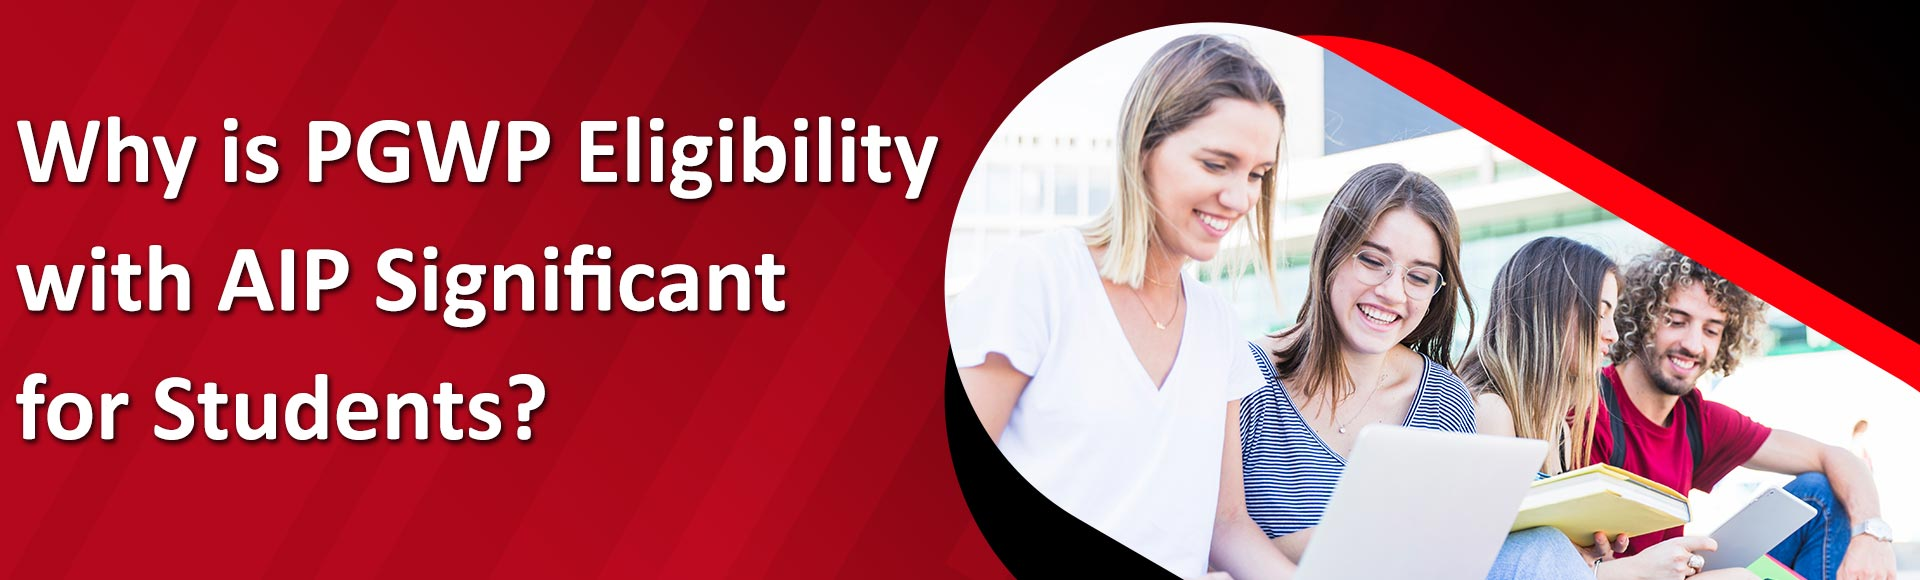 Why is PGWP eligibility with AIP significant for students?